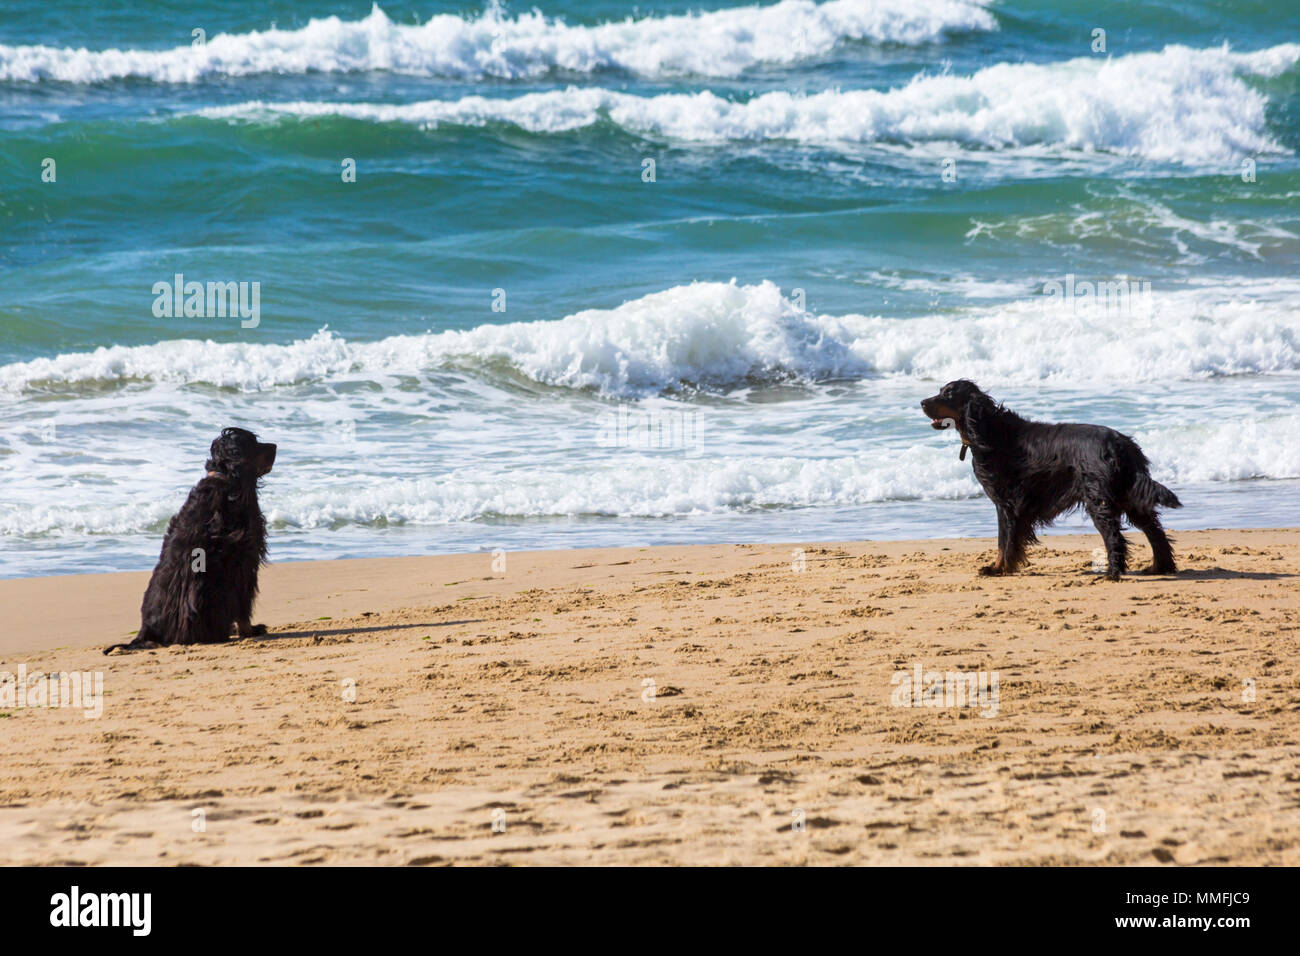 Poole, Dorset, UK. 11th May 2018. UK weather: breezy sunny day at Poole as Gordon Setter dogs discuss whether to go for a swim in the sea! Credit: Carolyn Jenkins/Alamy Live News - Stock Image